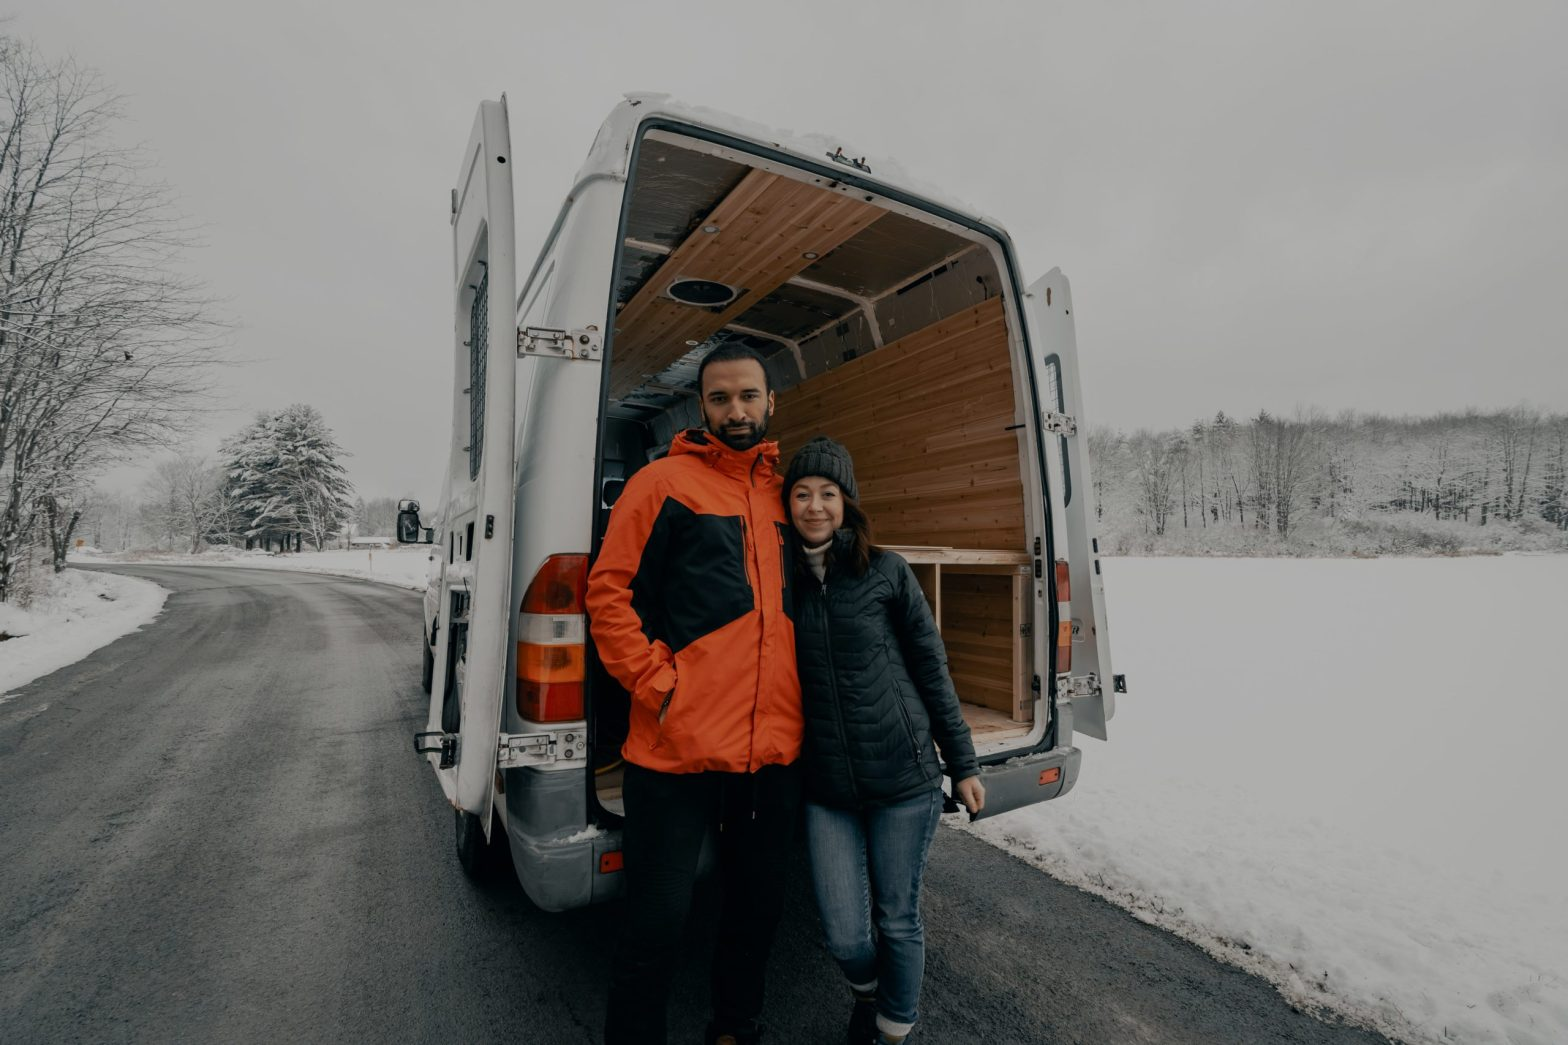 Couple move in together - moving van - winter